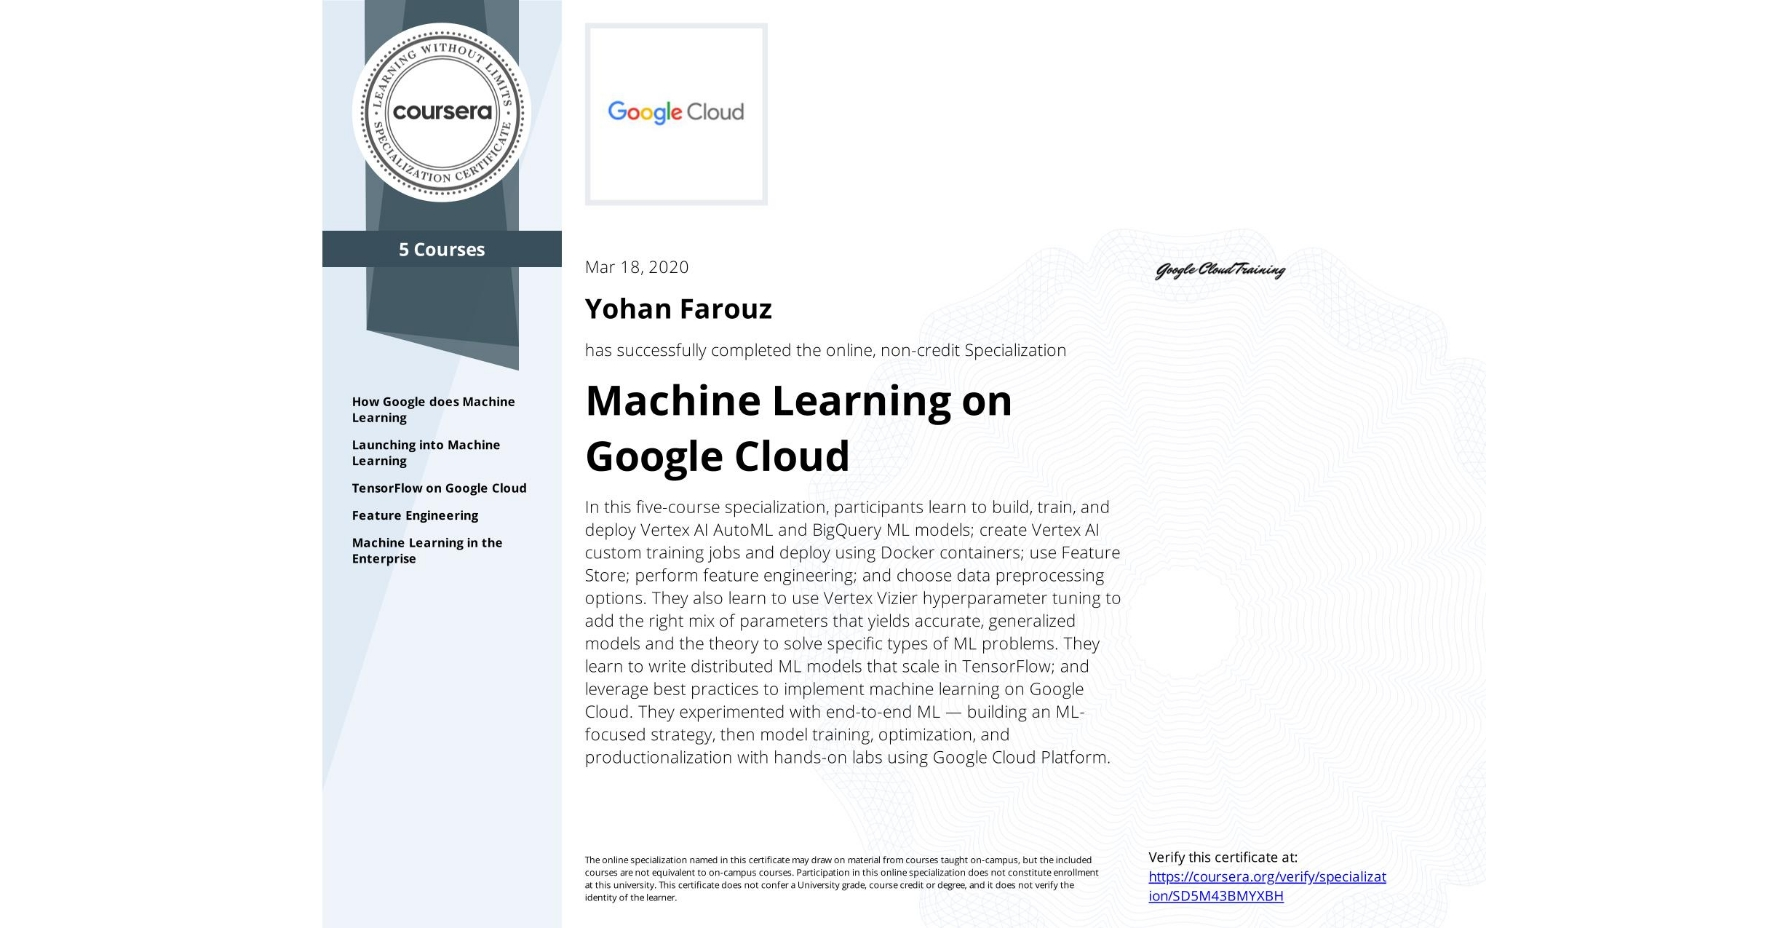 View certificate for Yohan Farouz, Machine Learning with TensorFlow on Google Cloud Platform, offered through Coursera. This five-course online specialization teaches course participants how to write distributed machine learning models that scale in Tensorflow, scale out the training of those models. and offer high-performance predictions. Also featured is the conversion of raw data to features in a way that allows ML to learn important characteristics from the data and bring human insight to bear on the problem. It also teaches how to incorporate the right mix of parameters that yields accurate, generalized models and knowledge of the theory to solve specific types of ML problems. Course participants experimented with end-to-end ML, starting from building an ML-focused strategy and progressing into model training, optimization, and productionalization with hands-on labs using Google Cloud Platform.